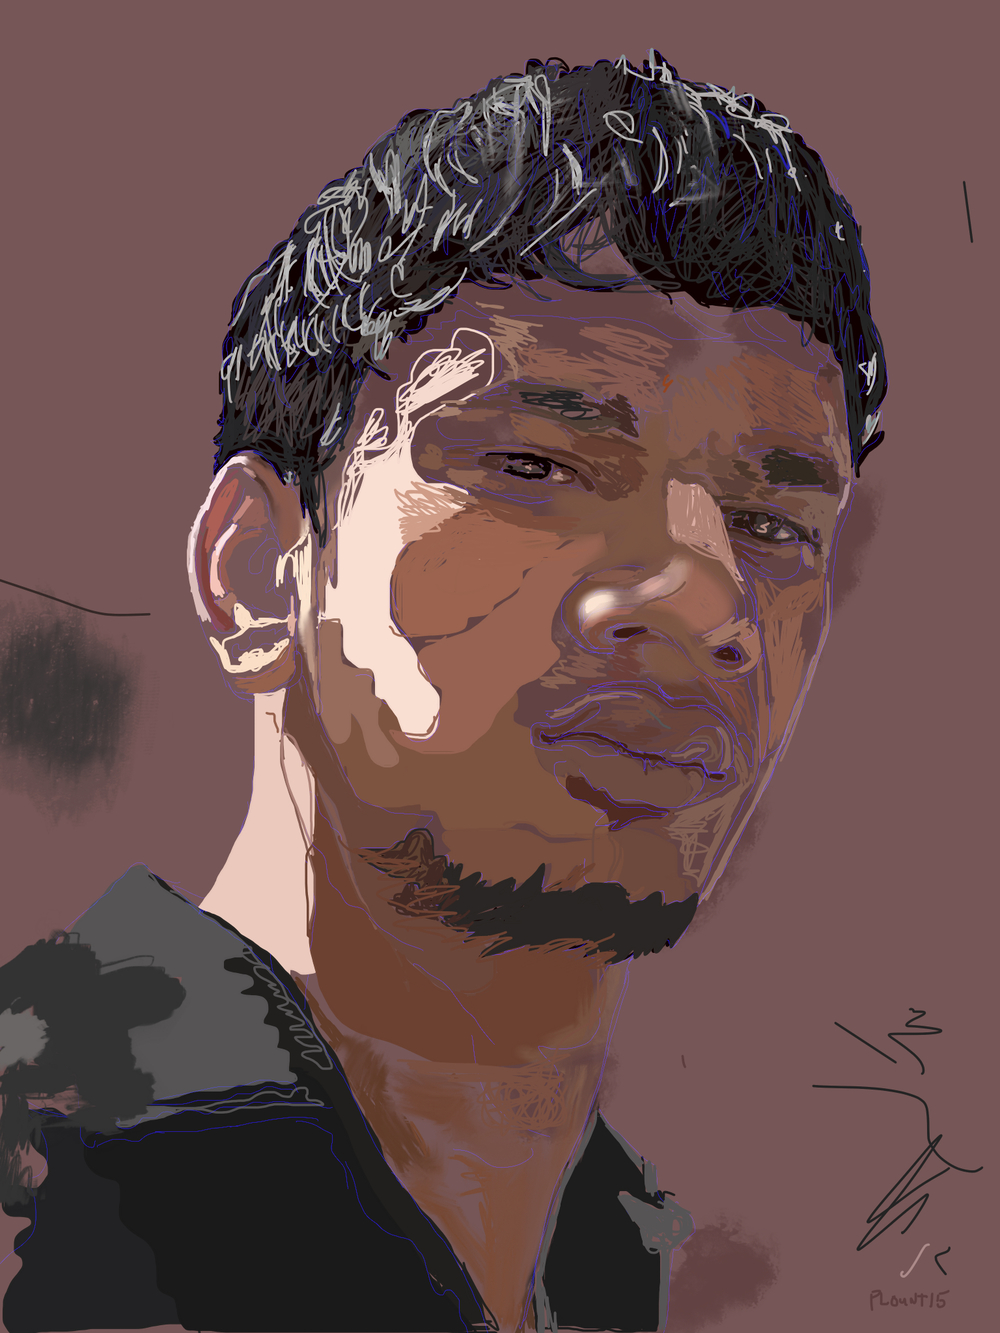 Alok  FBSelfie, ProCreate, Pencil 53, Photoshop, iPad, Desktop Digital Image Dimensions Variable © SP/MWW.2015